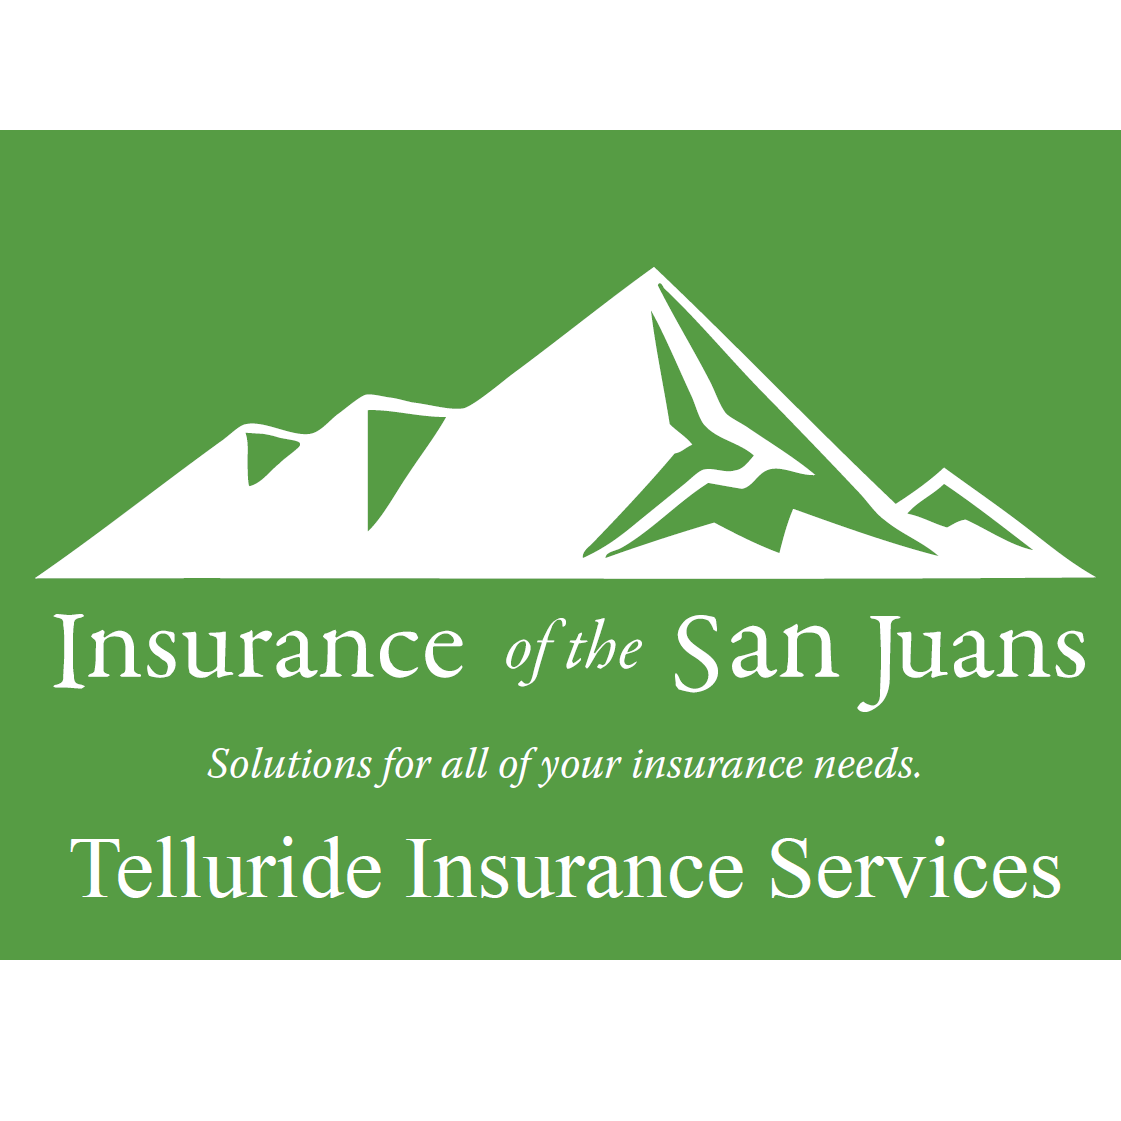 Insurance of the San Juans